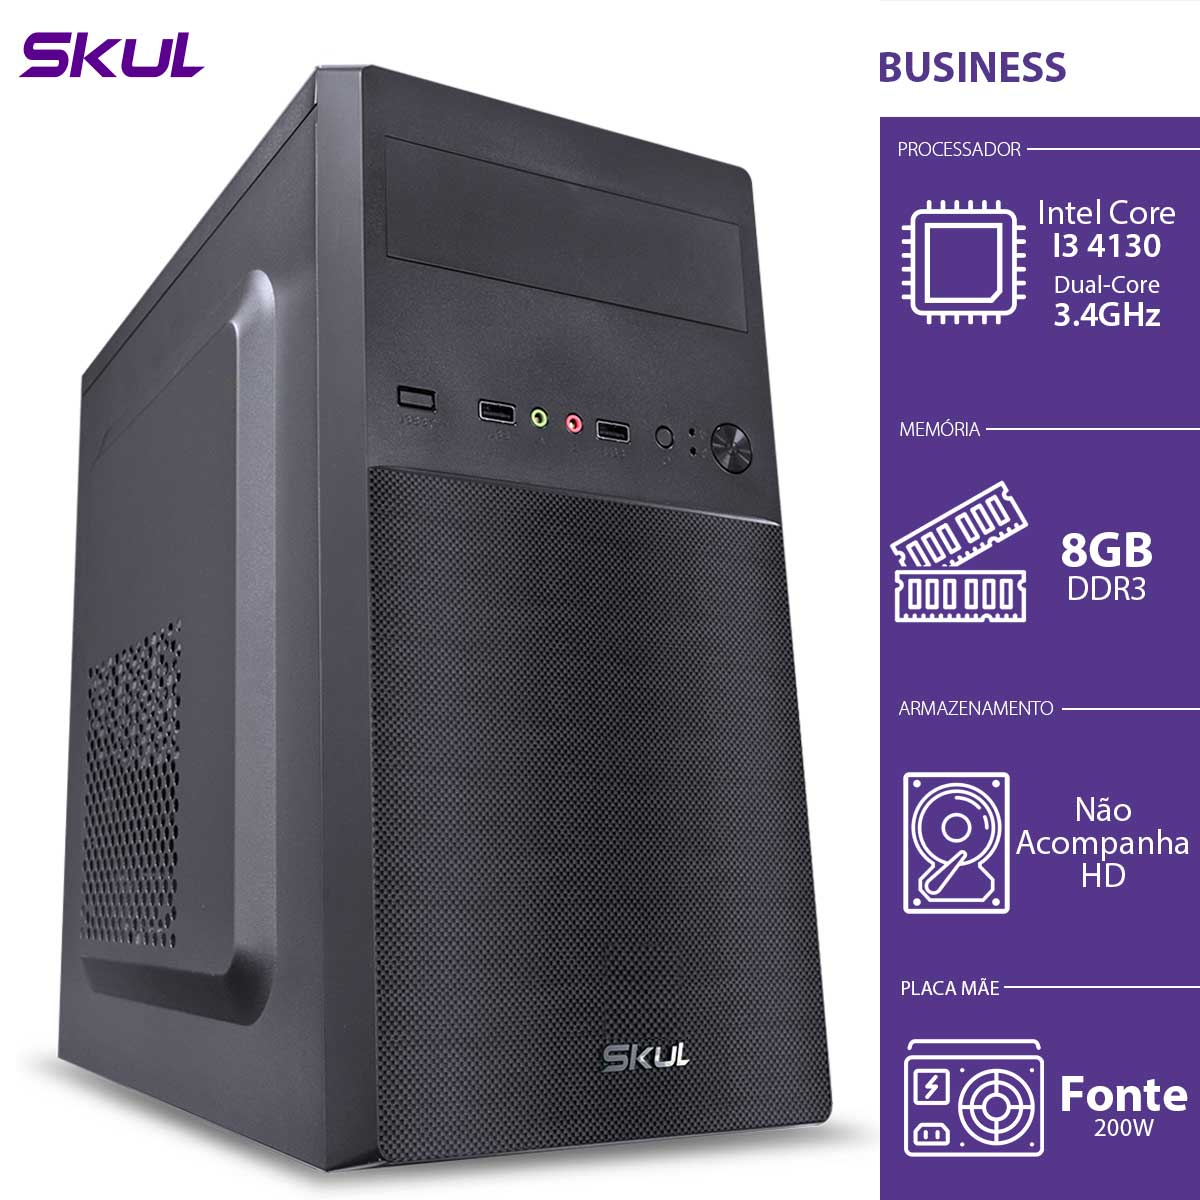 COMPUTADOR BUSINESS B300 - I3 4130 3.4GHZ 8GB DDR3 SEM HD HDMI/VGA FONTE 200W